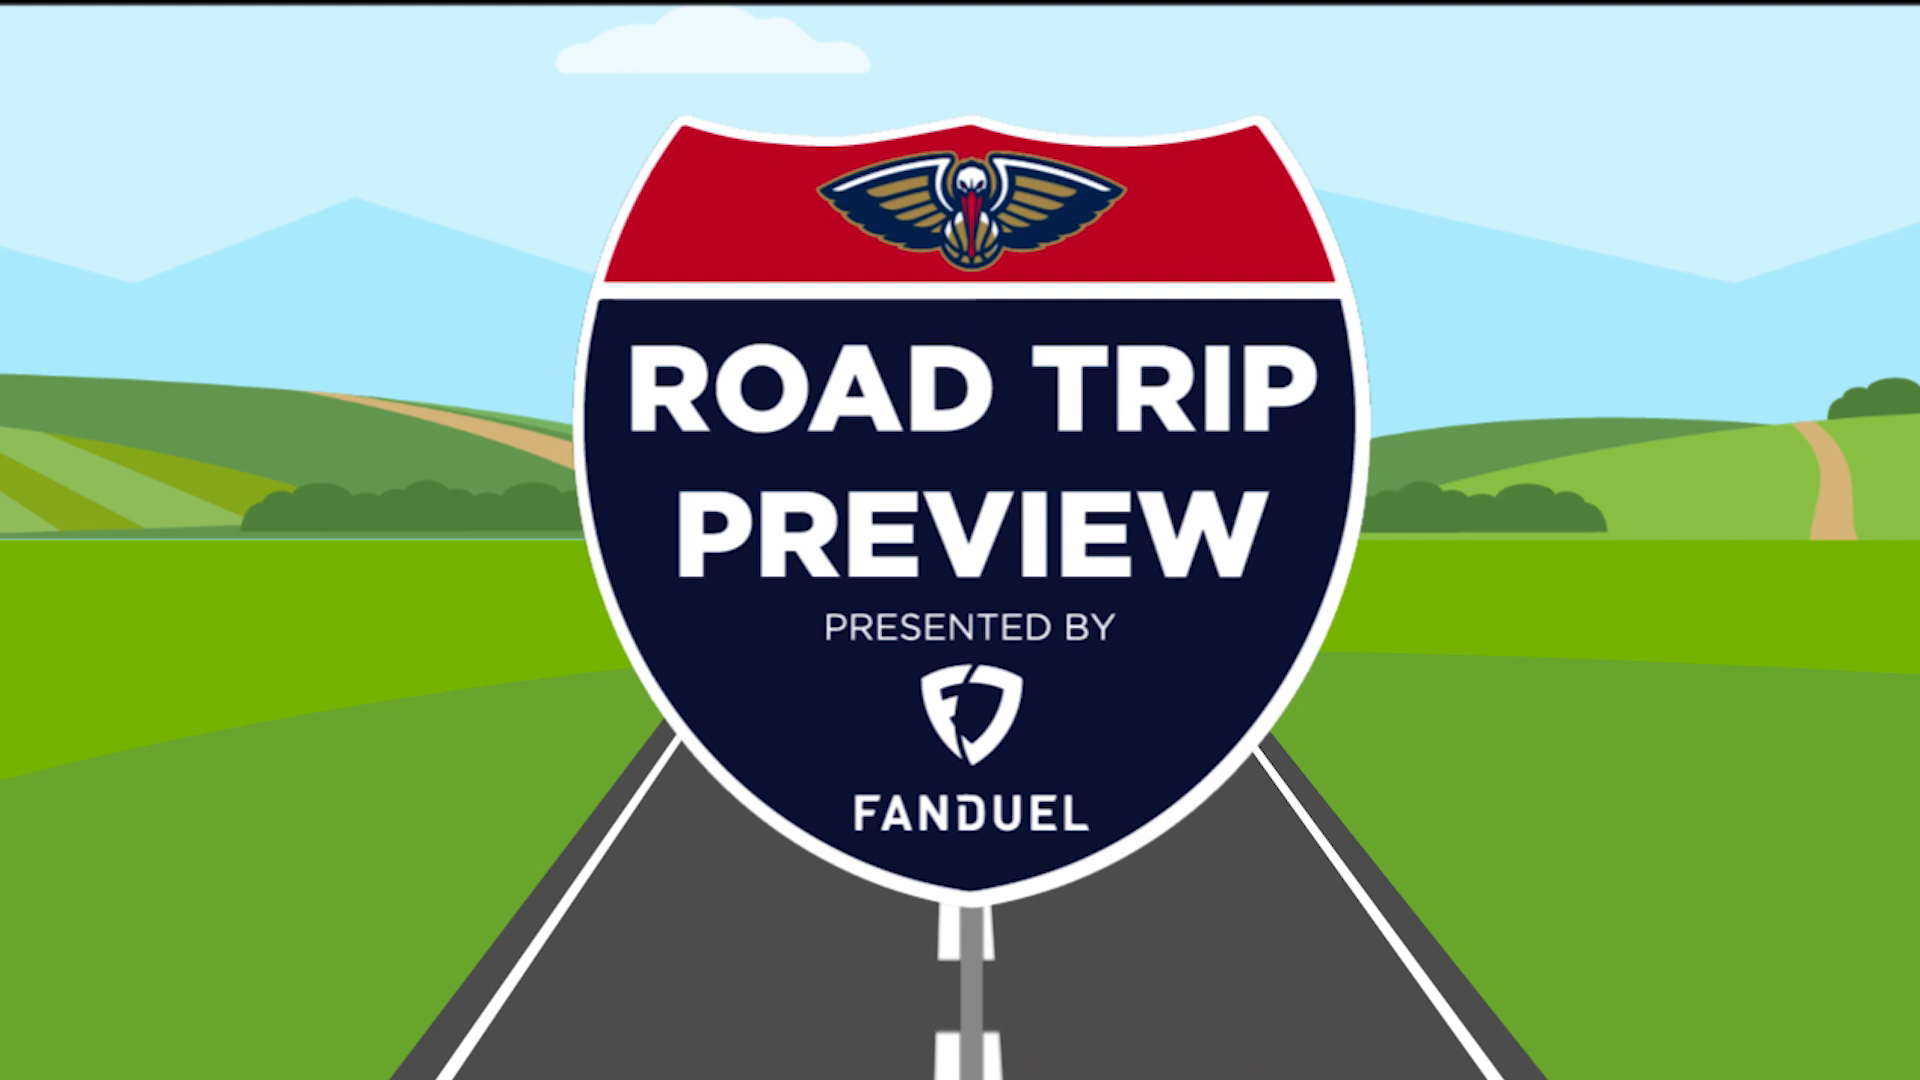 Pelicans Road Trip Preview presented by Fan Duel | Boston